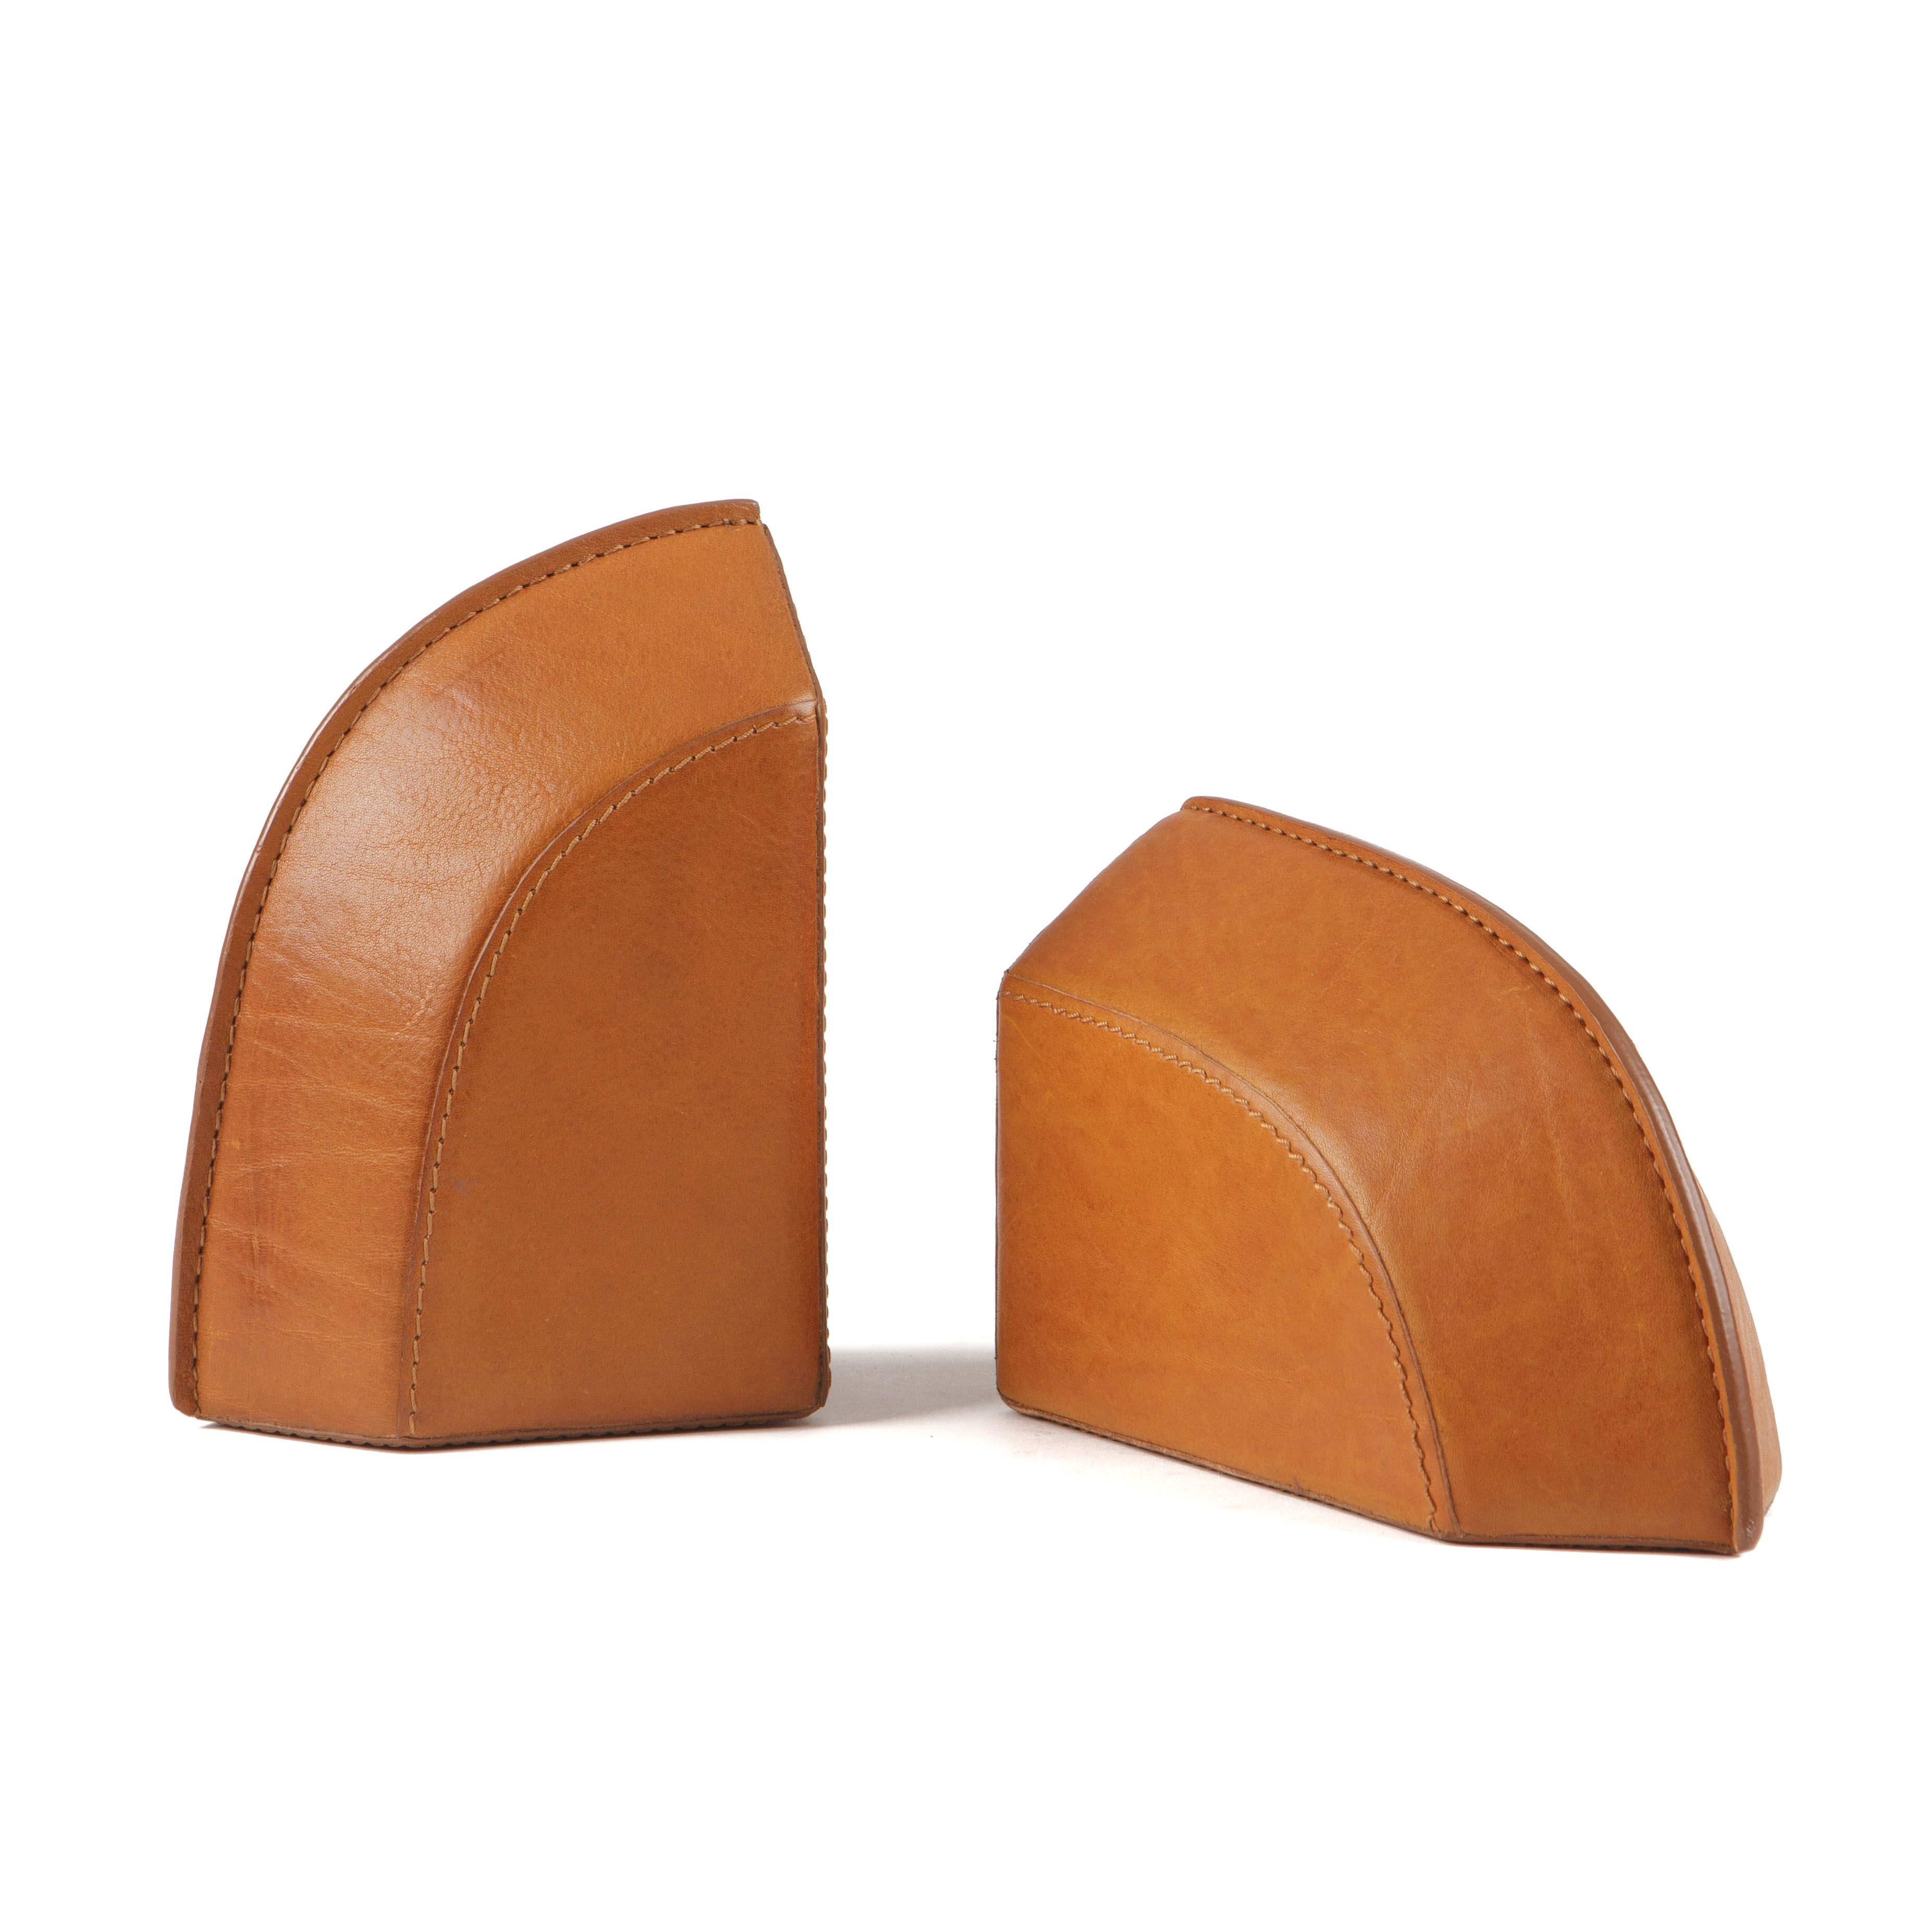 Leather Bookends Modern Saddle Leather Saddle Leather